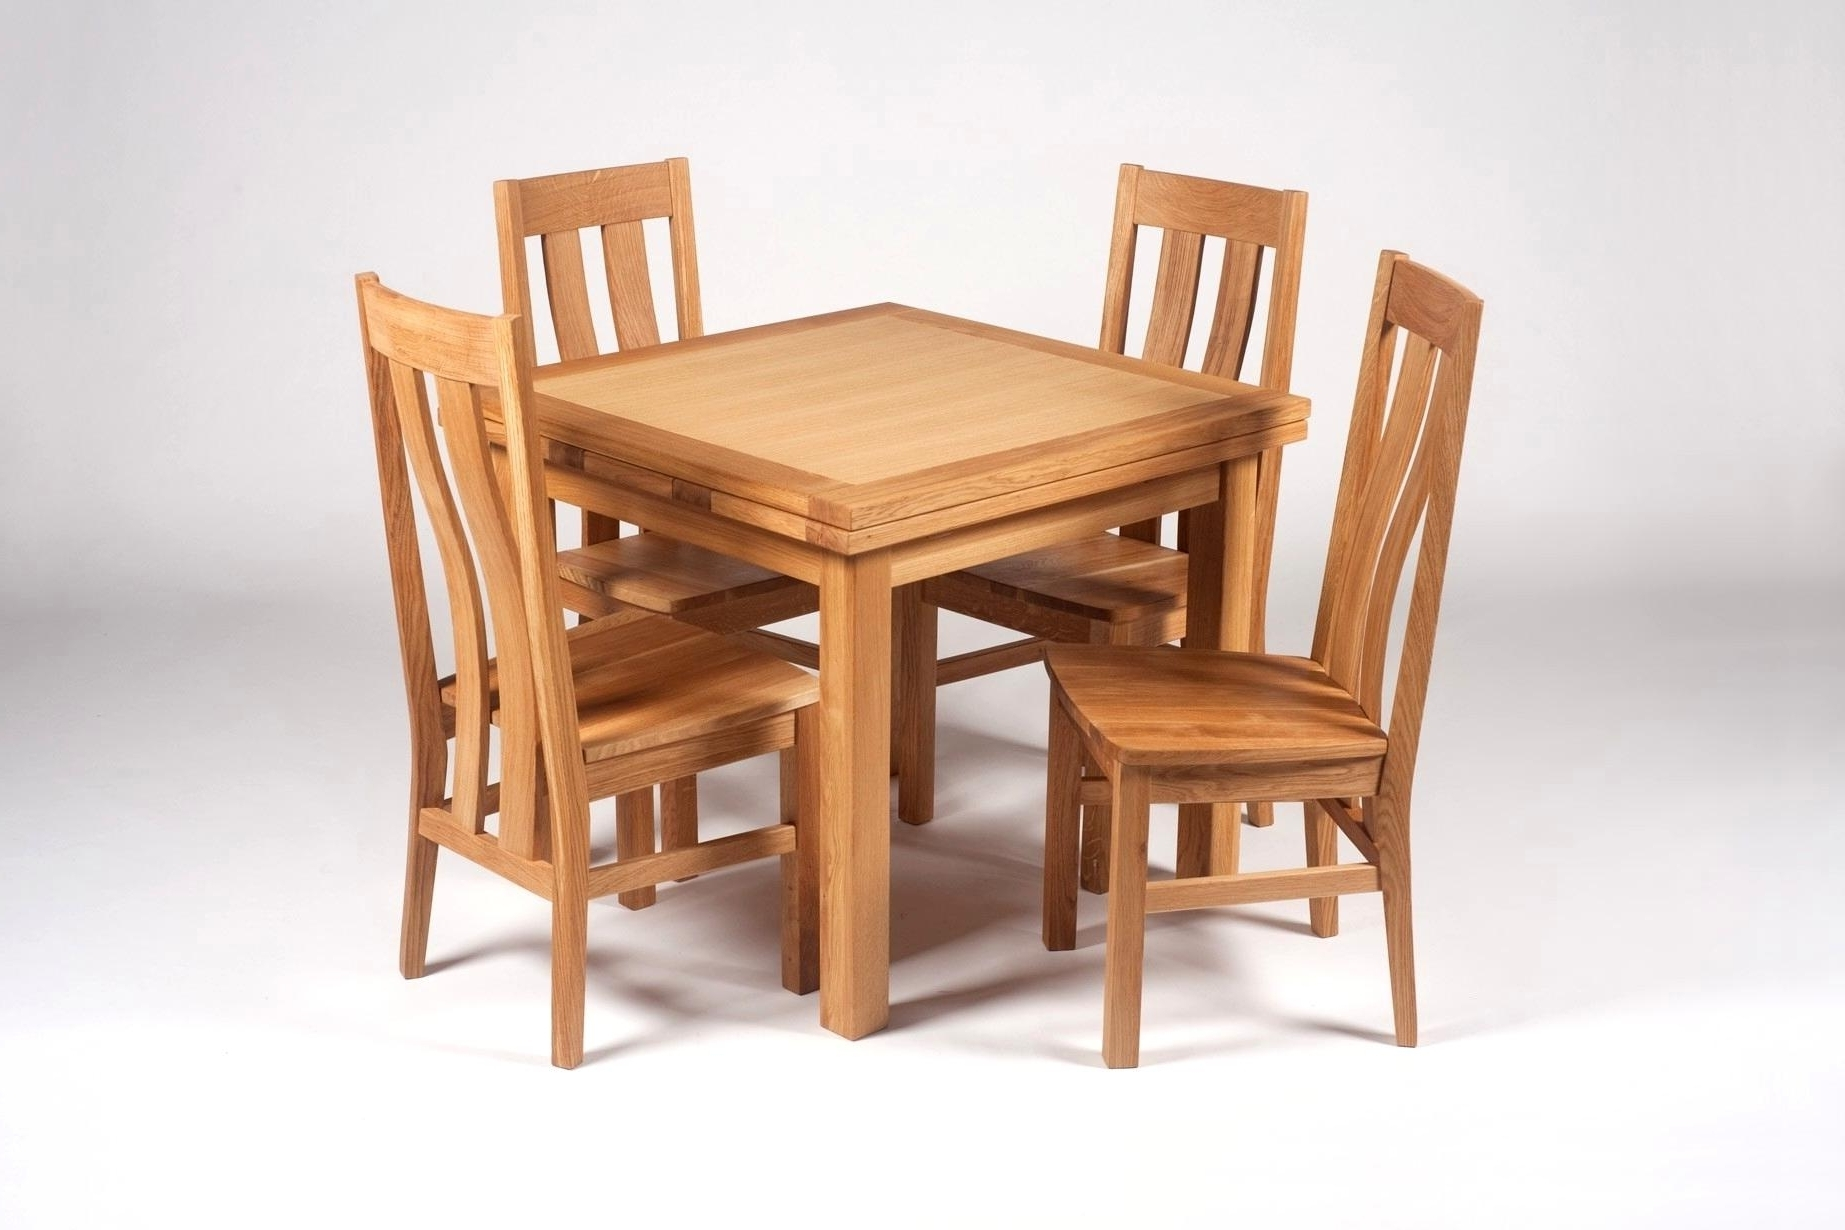 Extraordinary Good Expandable Dining Table Small Wood Chairs For Well Known Small Square Extending Dining Tables (View 2 of 25)